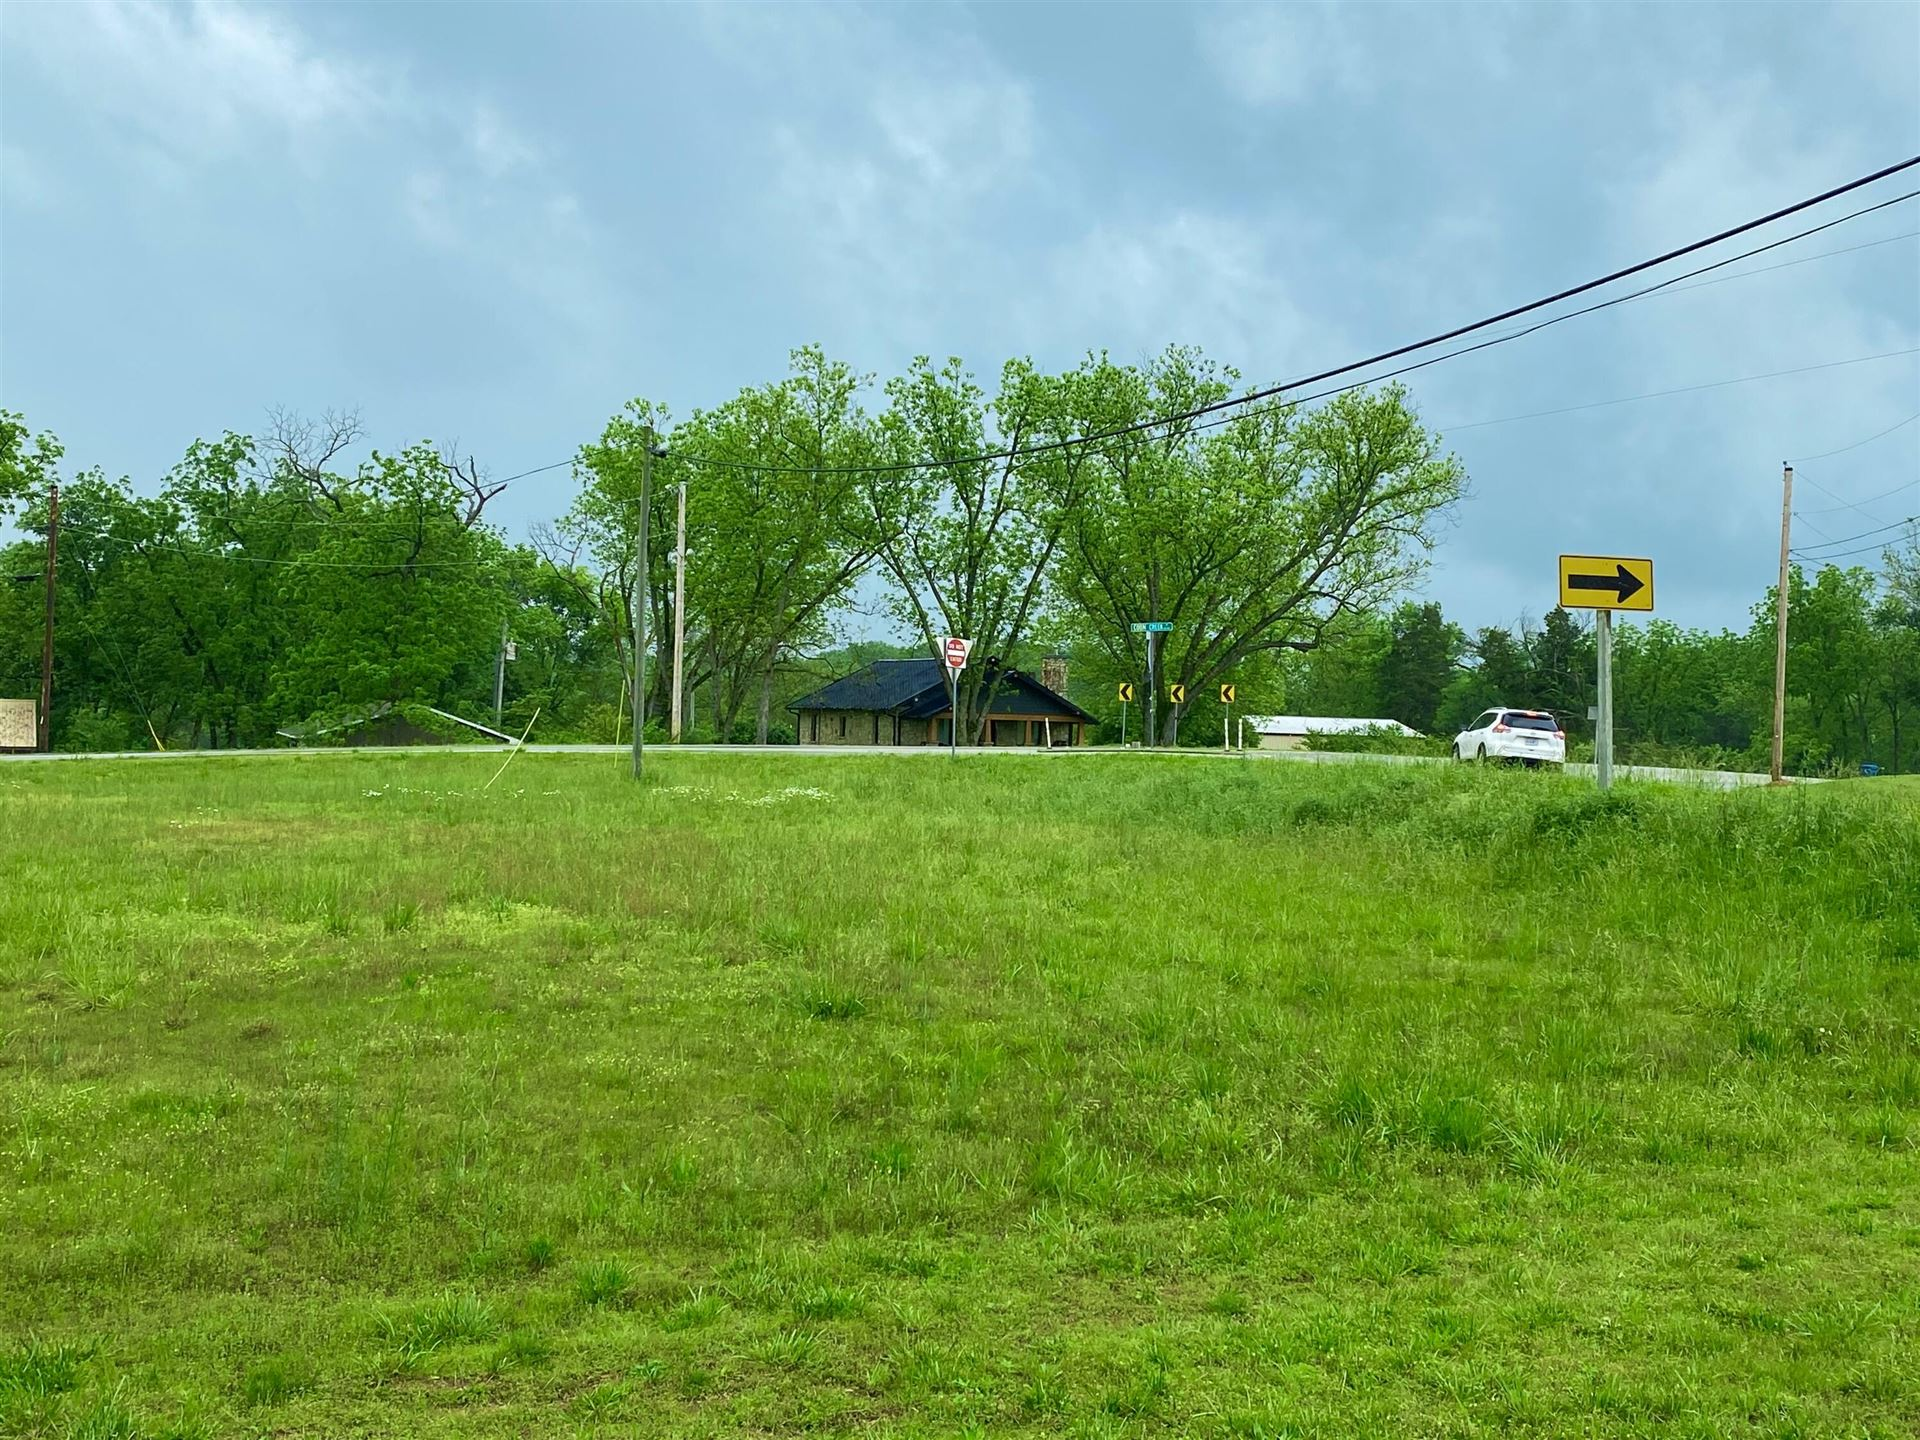 Photo of Lot 22 Coon Creek Business Park Ph 2, Hollister, MO 65672 (MLS # 60197605)